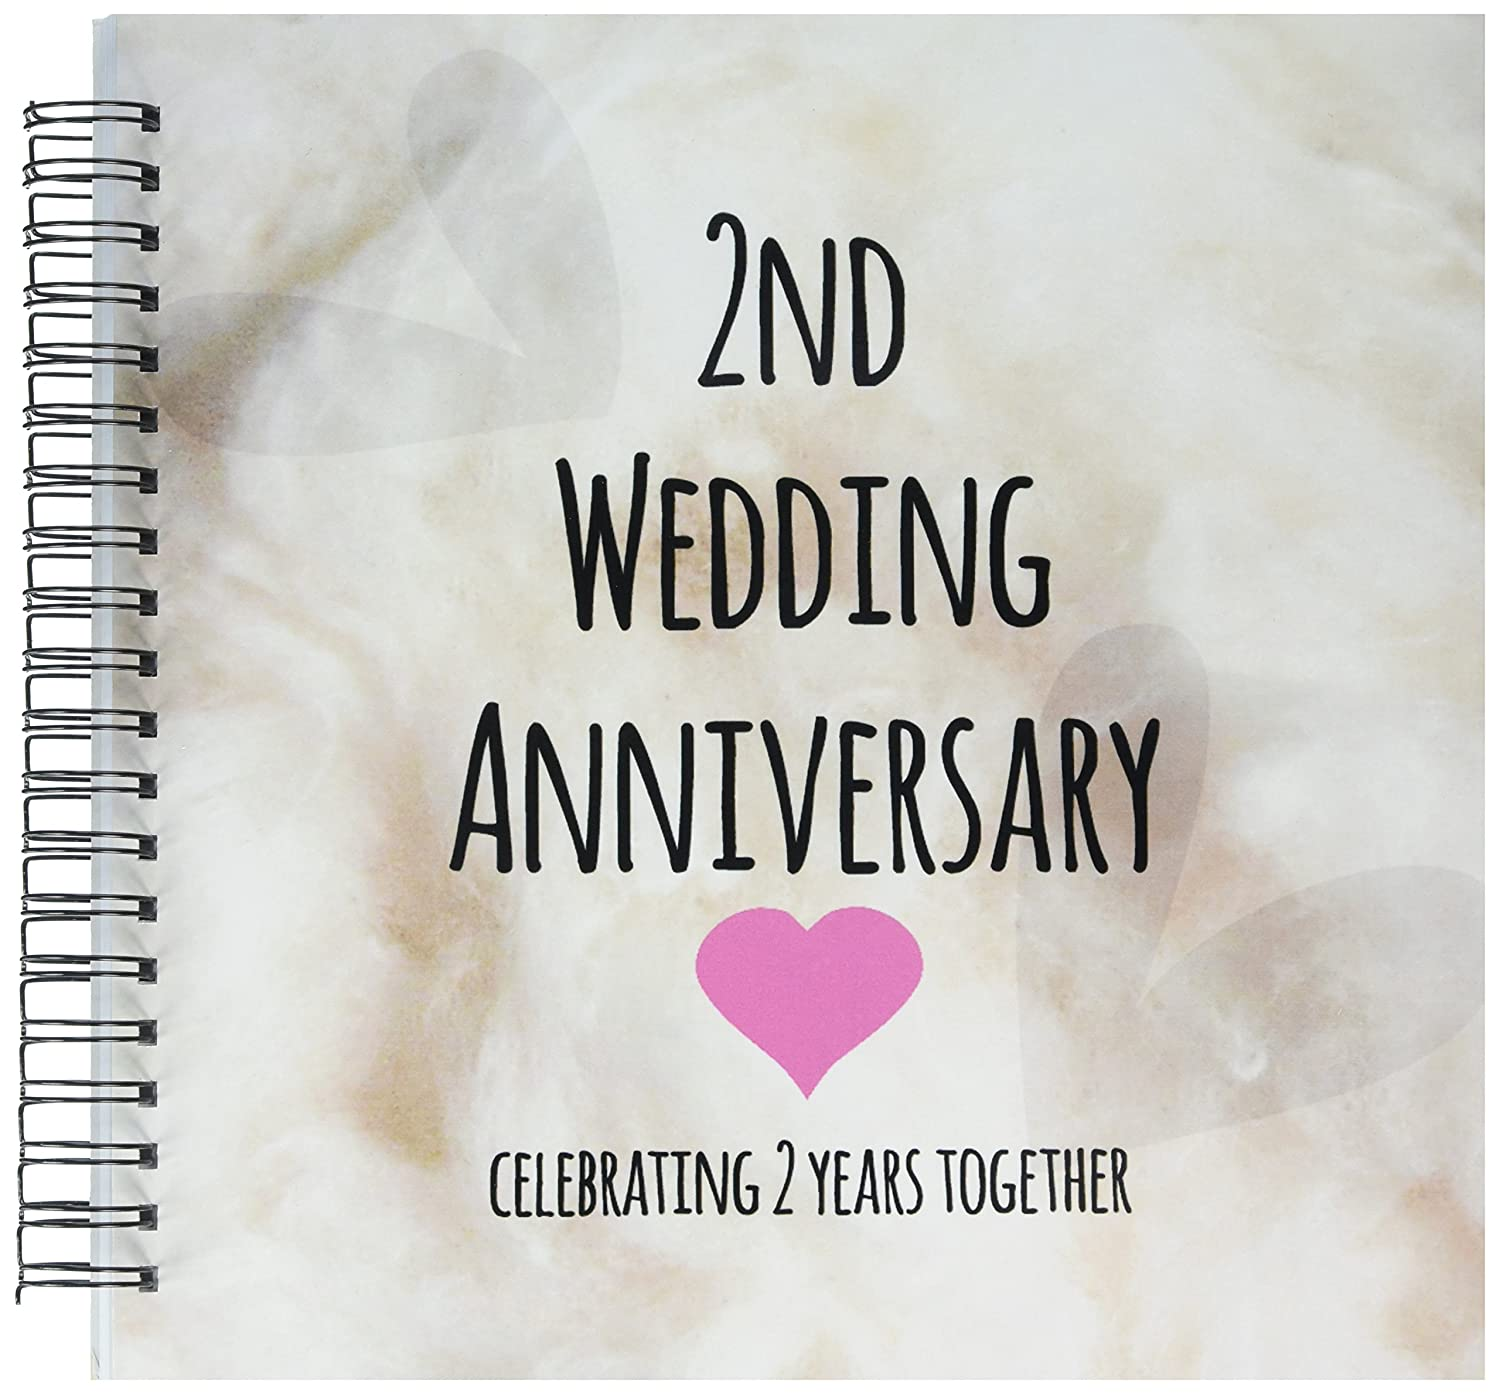 Cotton Wedding Anniversary Gift Ideas Australia : 3dRose db_154429_2 2nd Wedding Anniversary Gift-Cotton Celebrating 2 ...